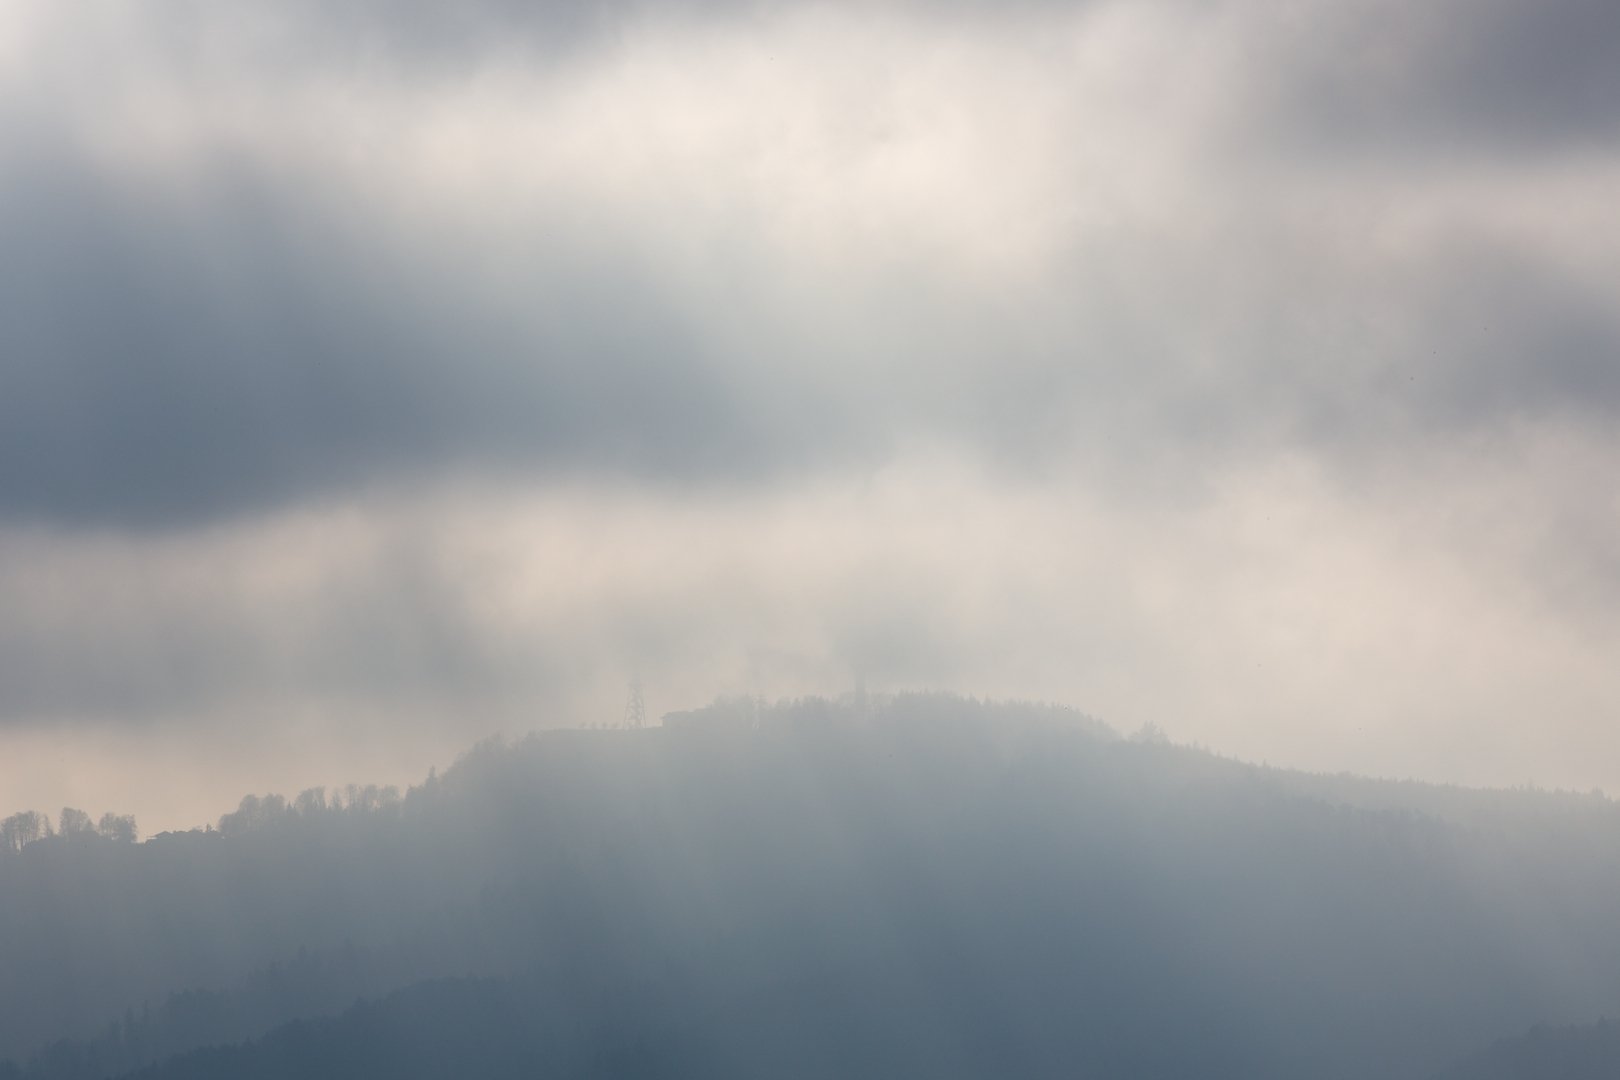 Rays of light trying to penetrate the mist on January 12, 2014 at 14:08 creating a Haboku mood